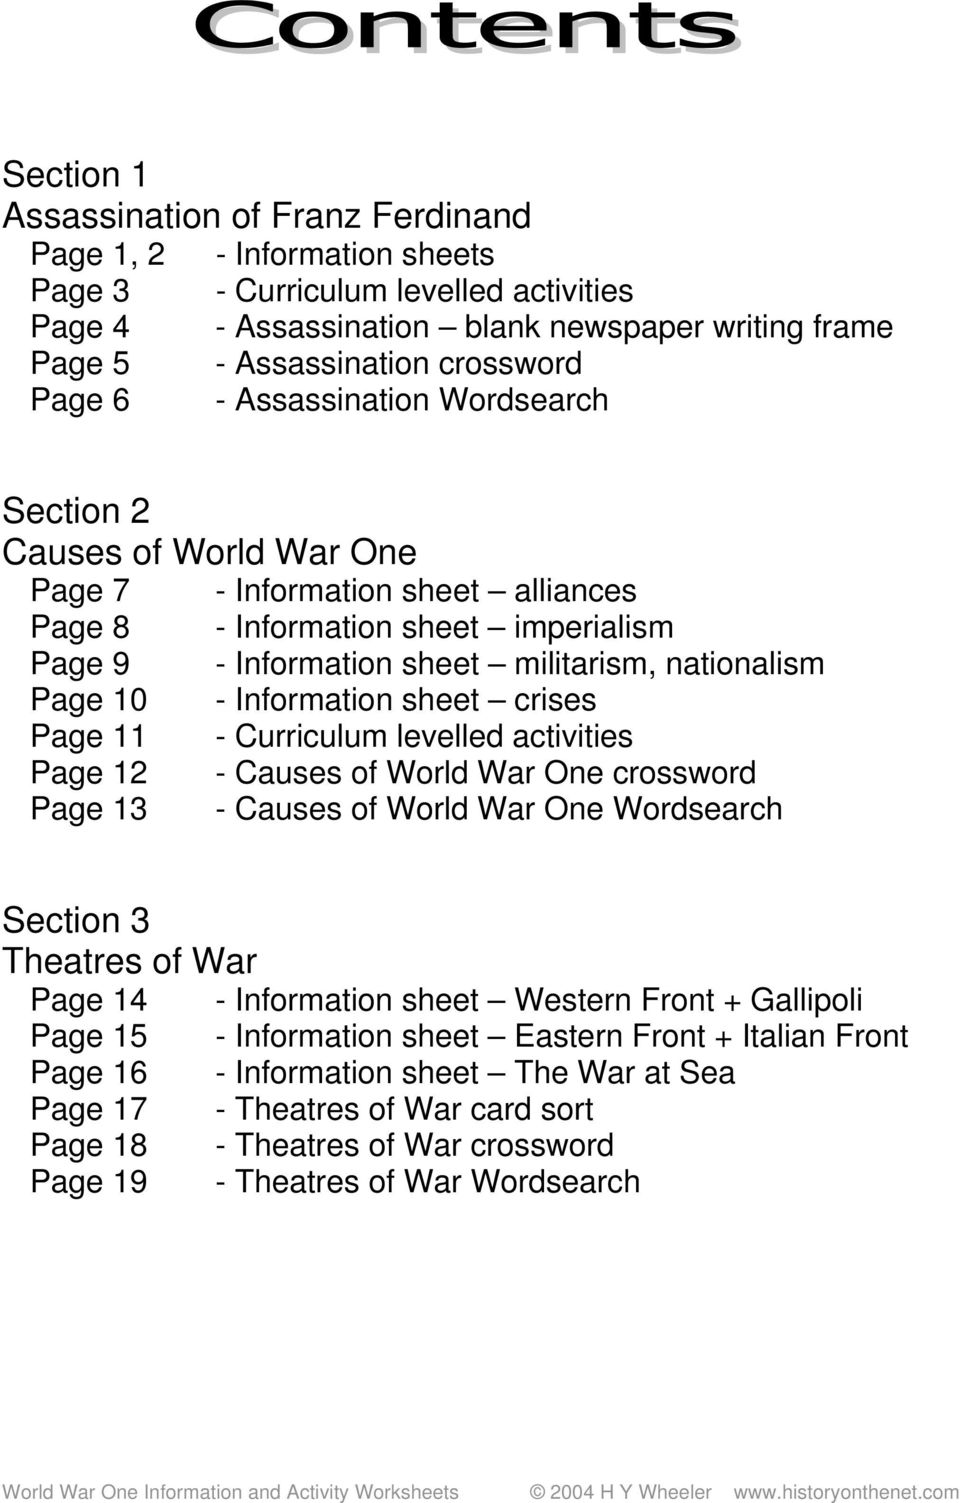 World War One Information and Activity Worksheets - PDF